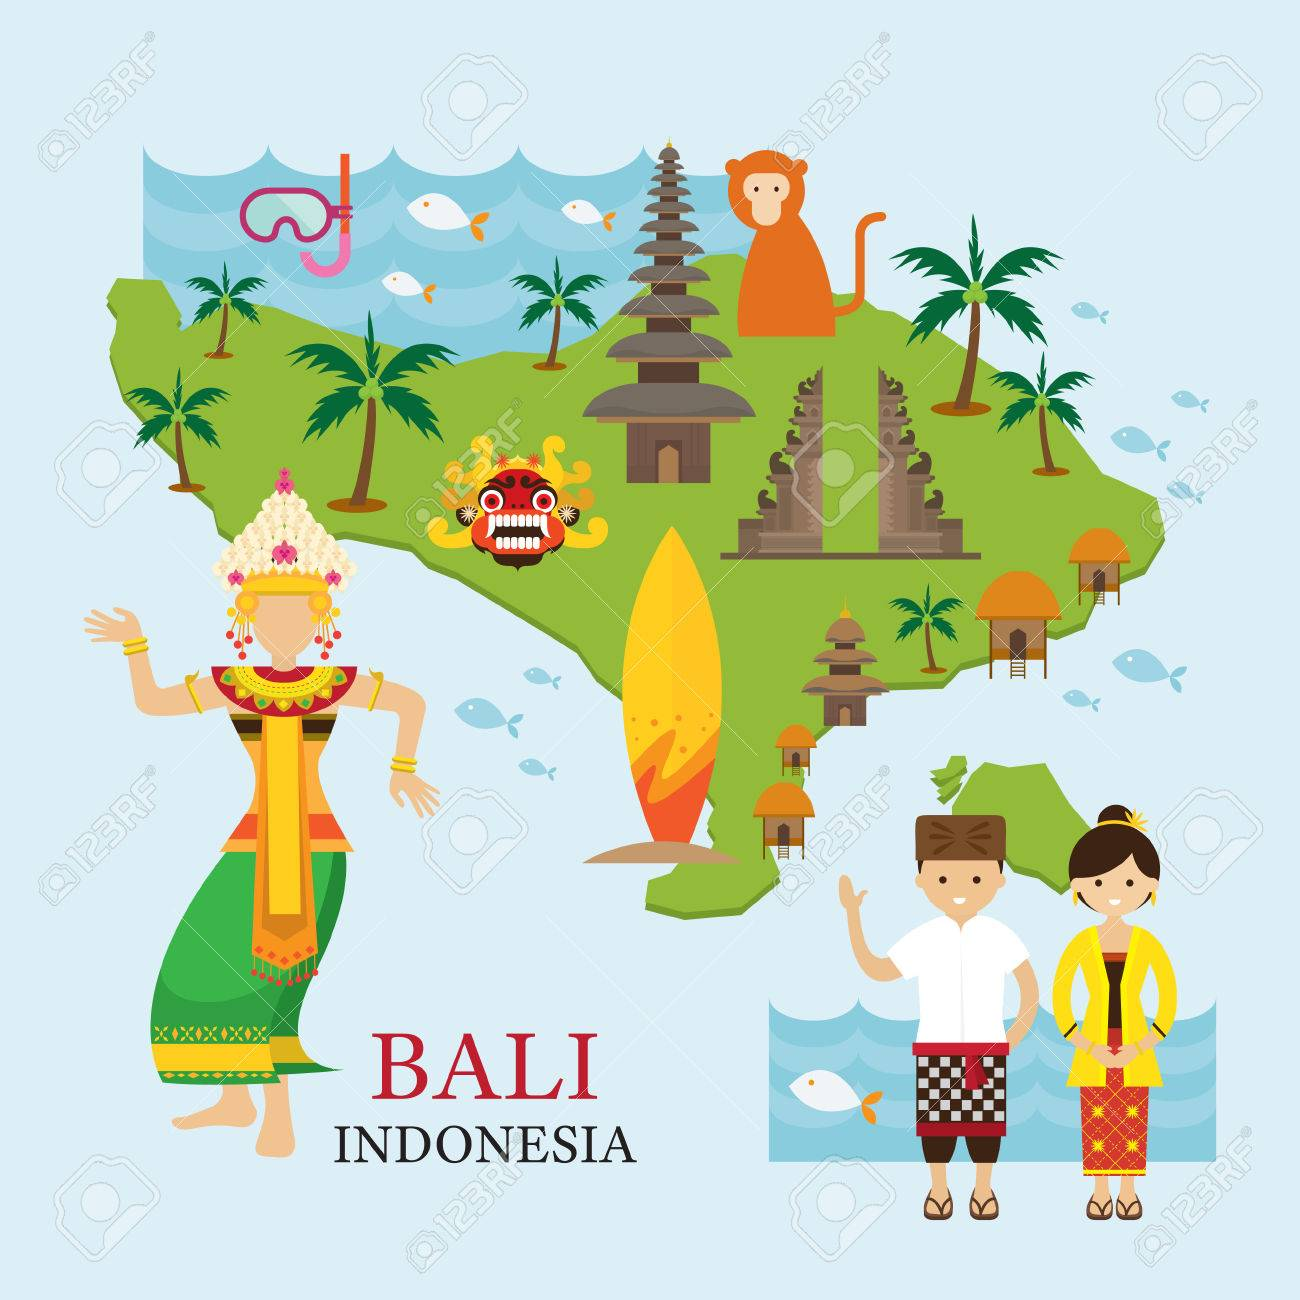 Bali Indonesia Map With Travel And Attraction Landmarks Tourism